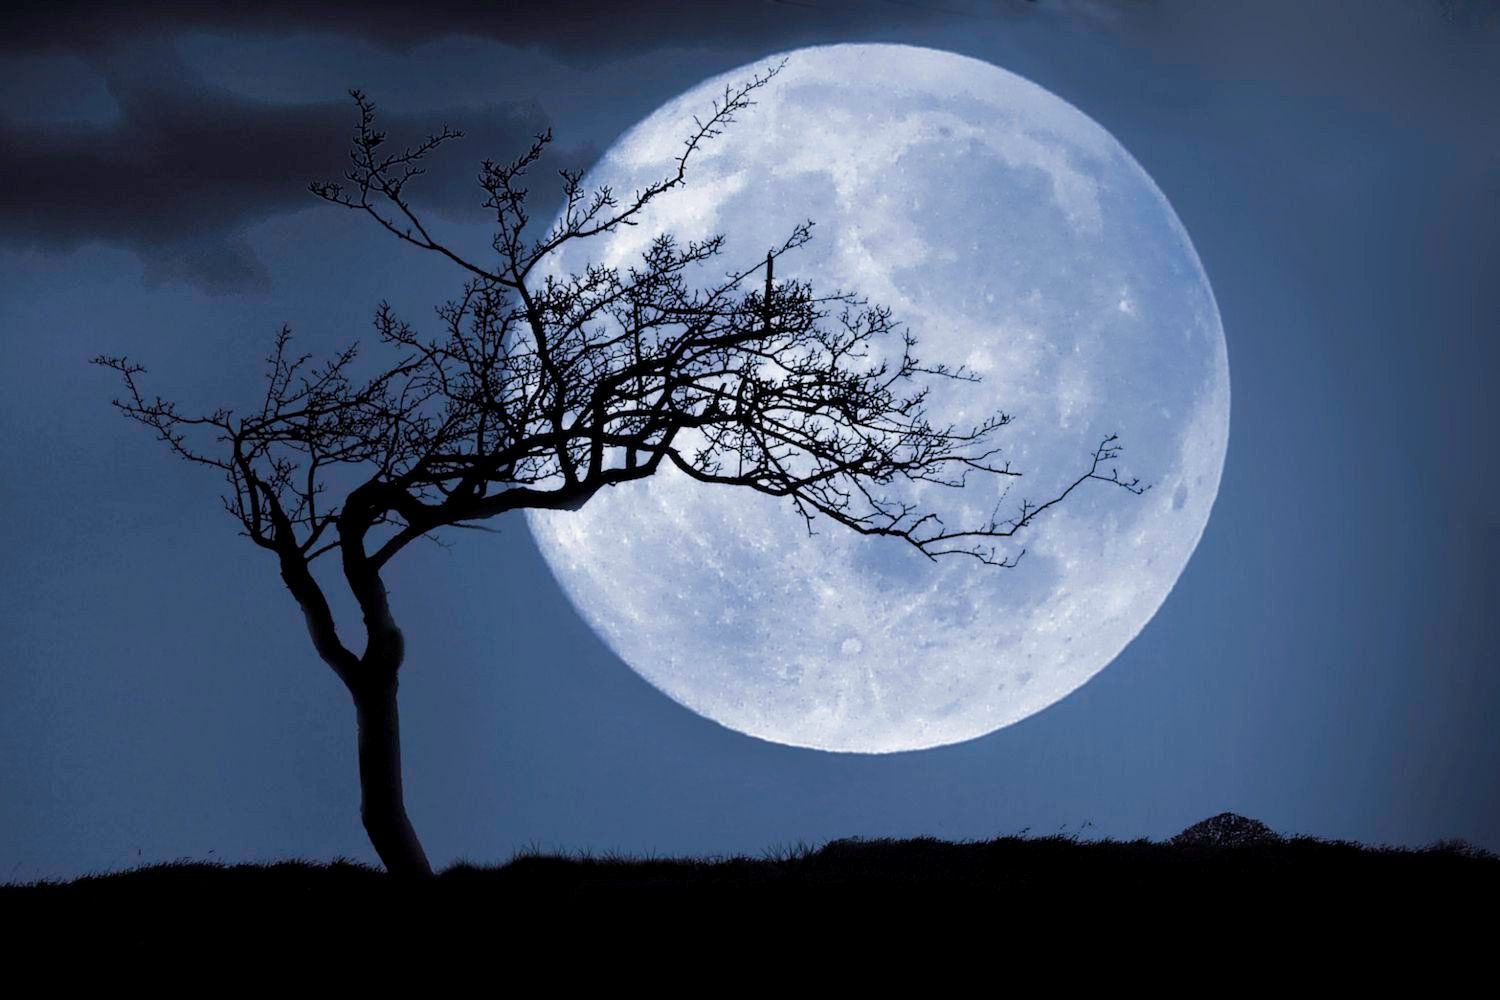 Silhouette of a tree in front of a huge full moon